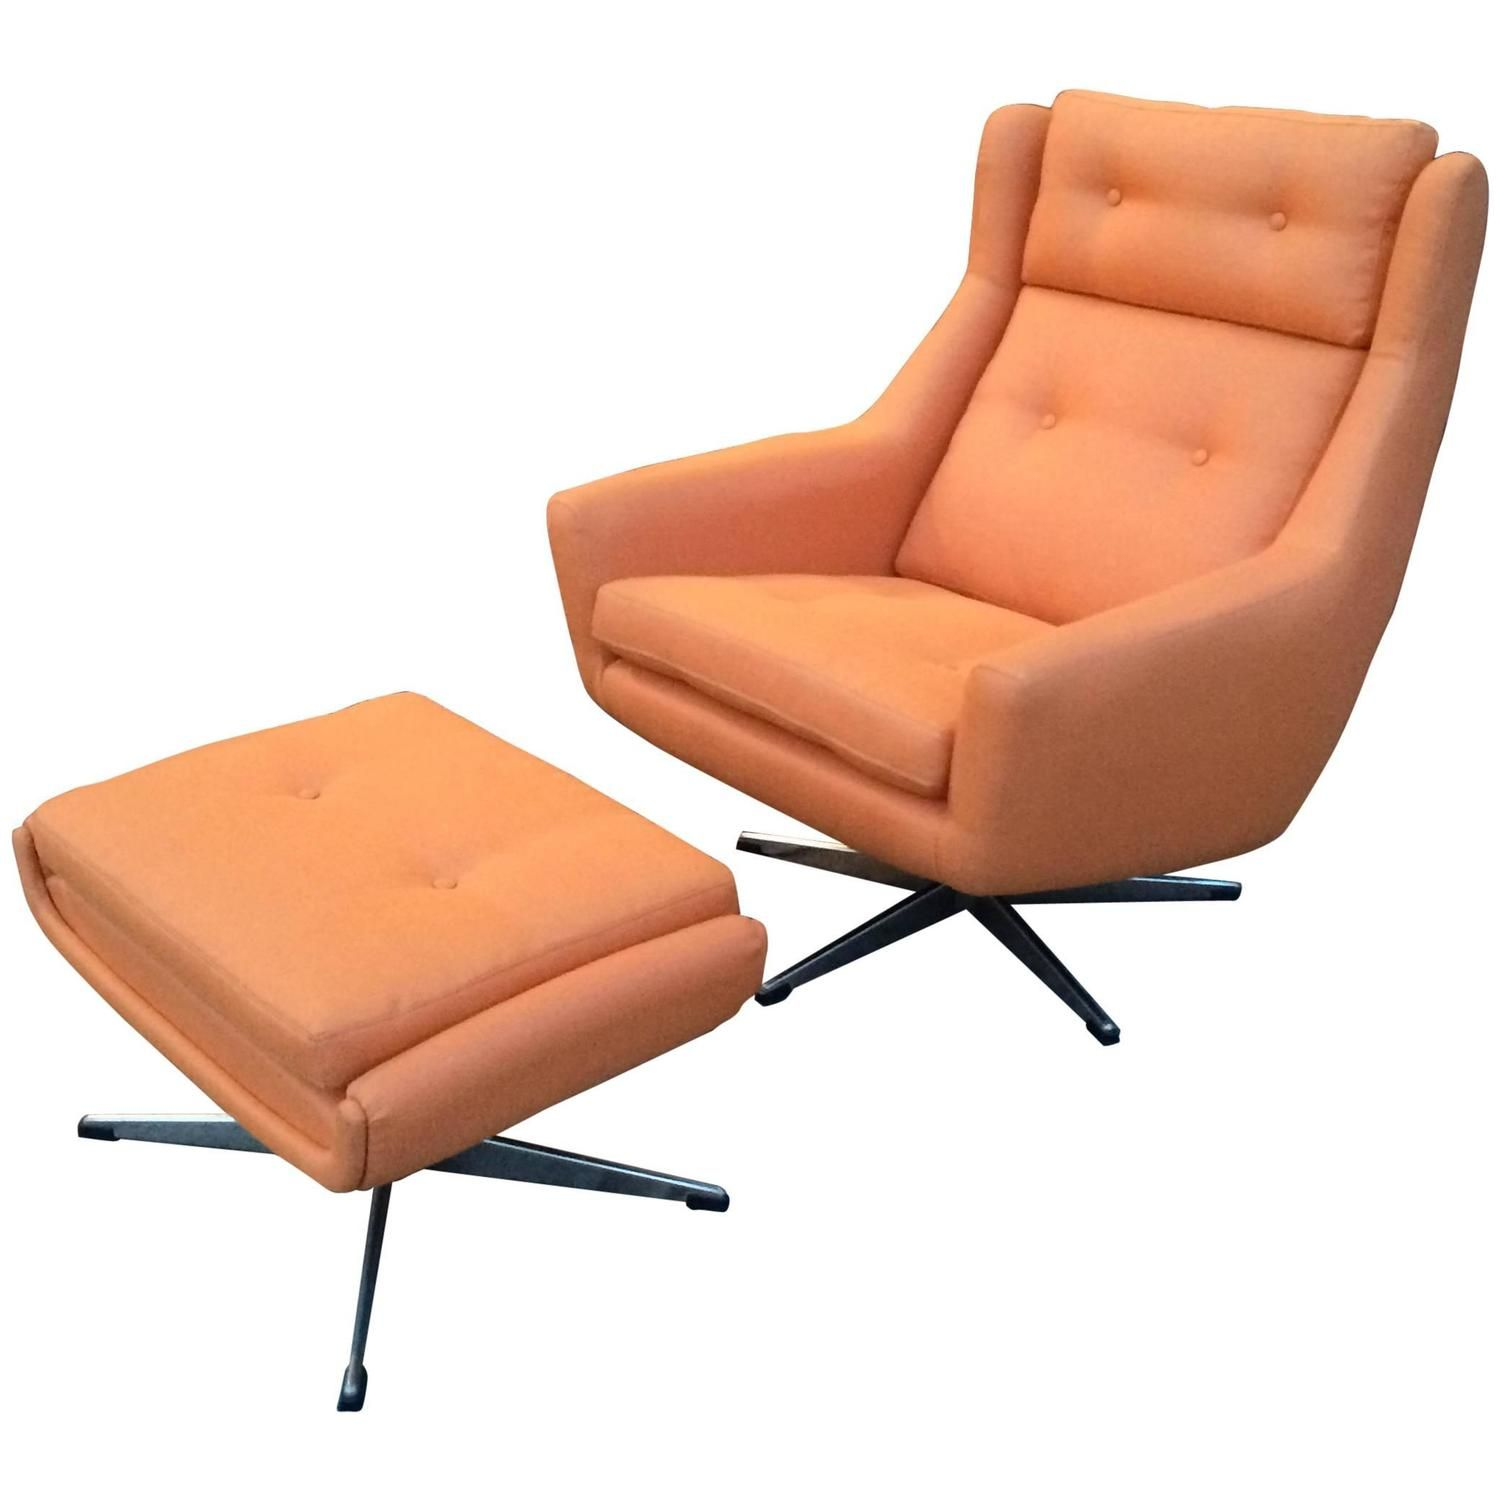 Moderner Fernsehsessel Mid-century Modern Lounge Chair And Ottoman Attributed To John Stuart | Moderne Lounge, Lounge Sessel, Drehstuhl